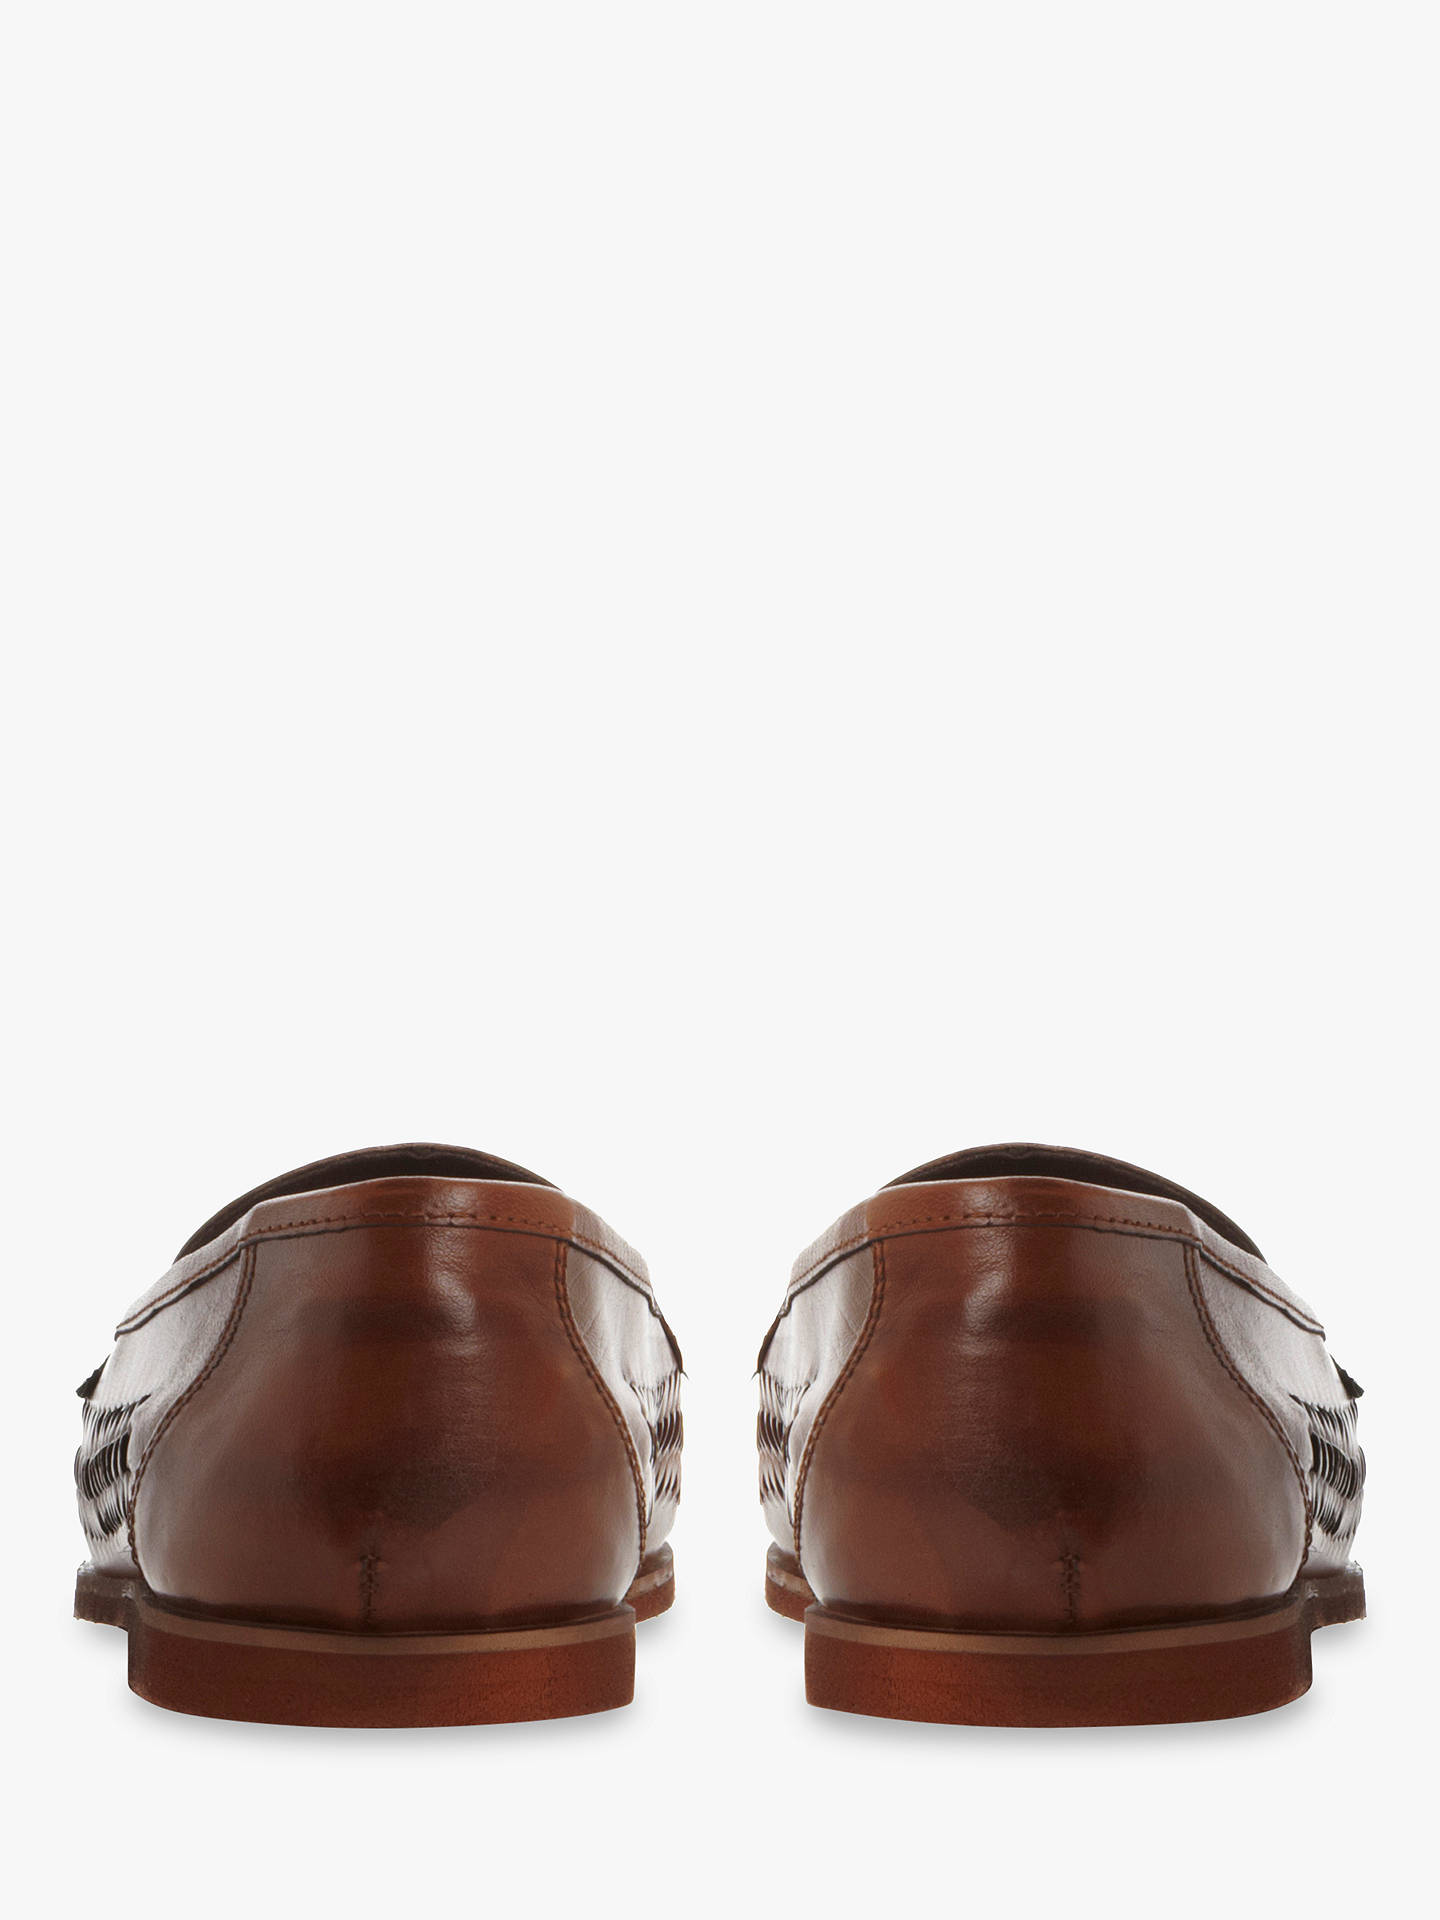 f8ea03a4e78030 ... Buy Dune Brighton Rock Woven Leather Loafers, Tan, 6 Online at  johnlewis.com ...